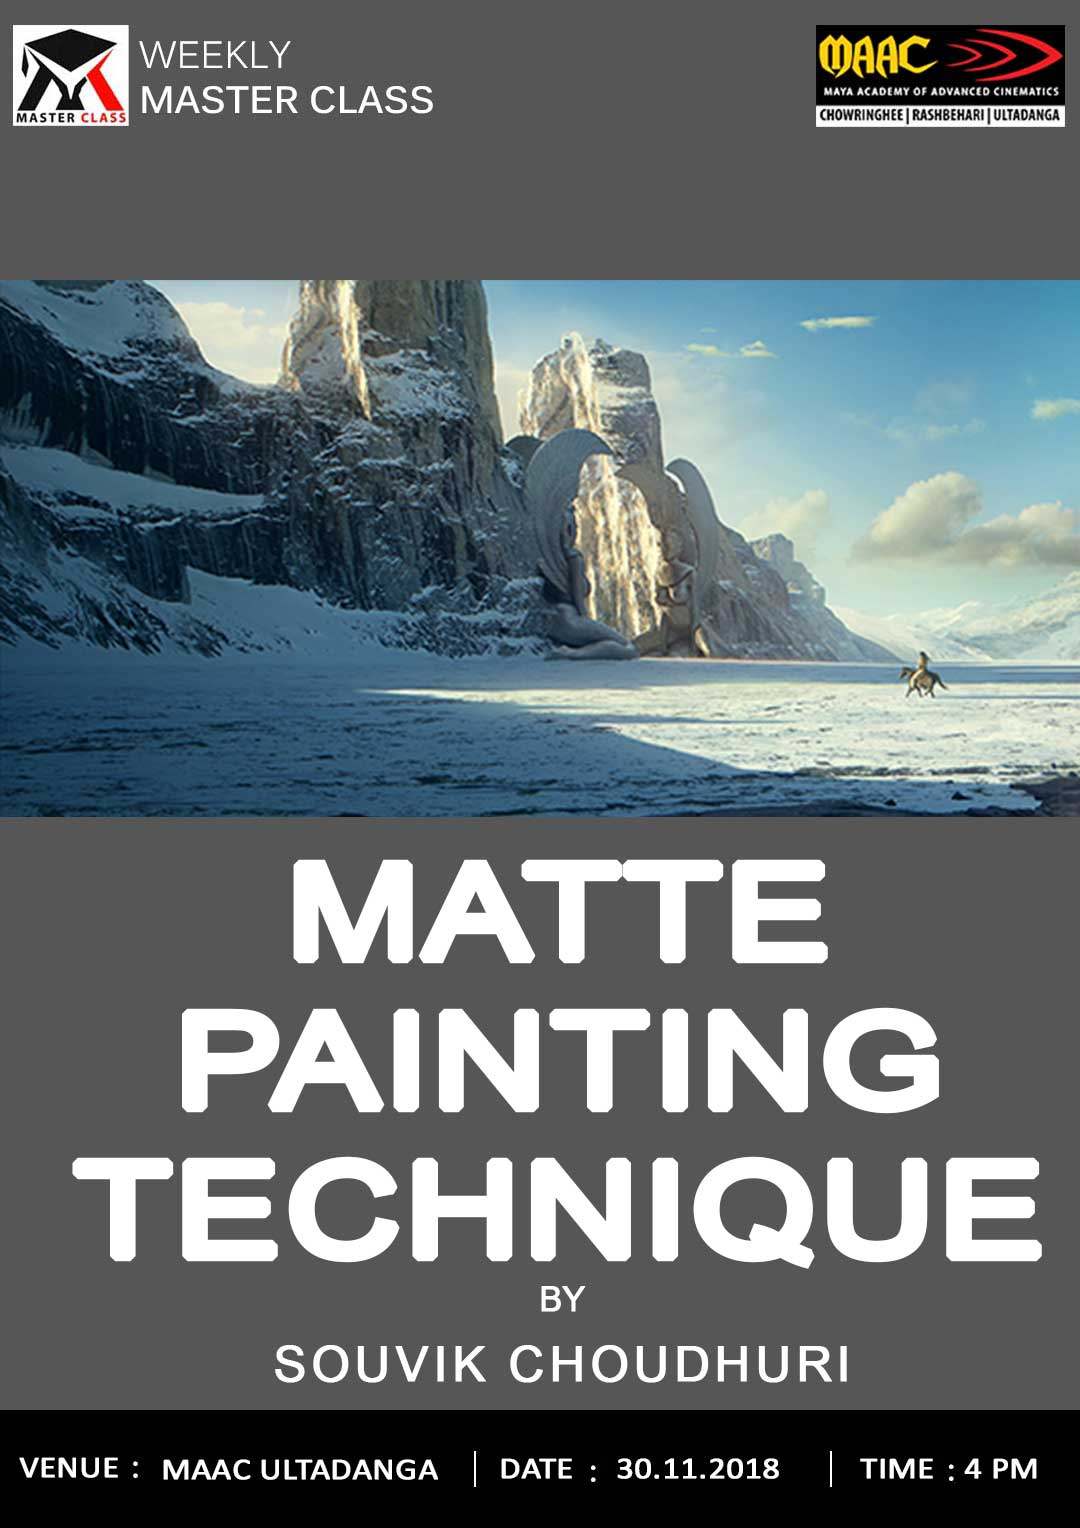 Weekly Master Class on Matte Painting Technique